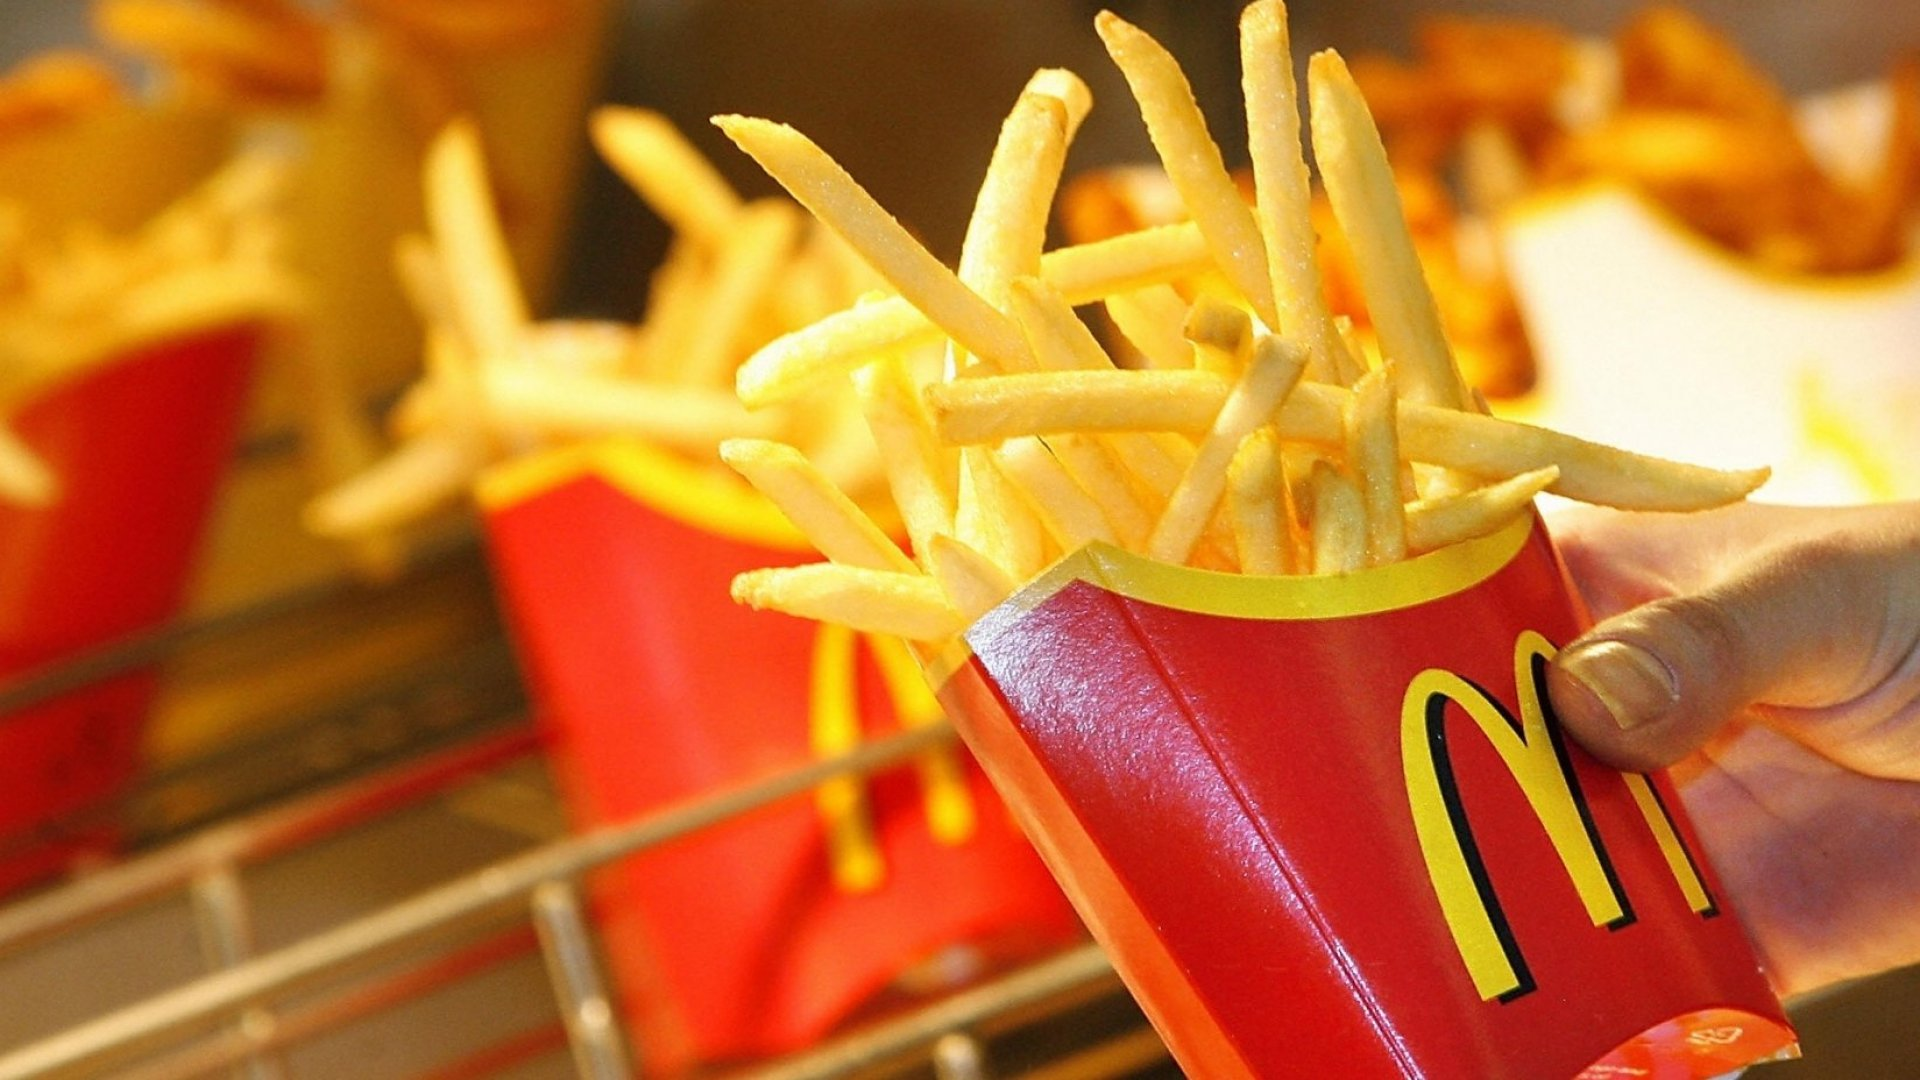 Here's Why McDonald's Will Give You Free Fries Every Friday in 2018